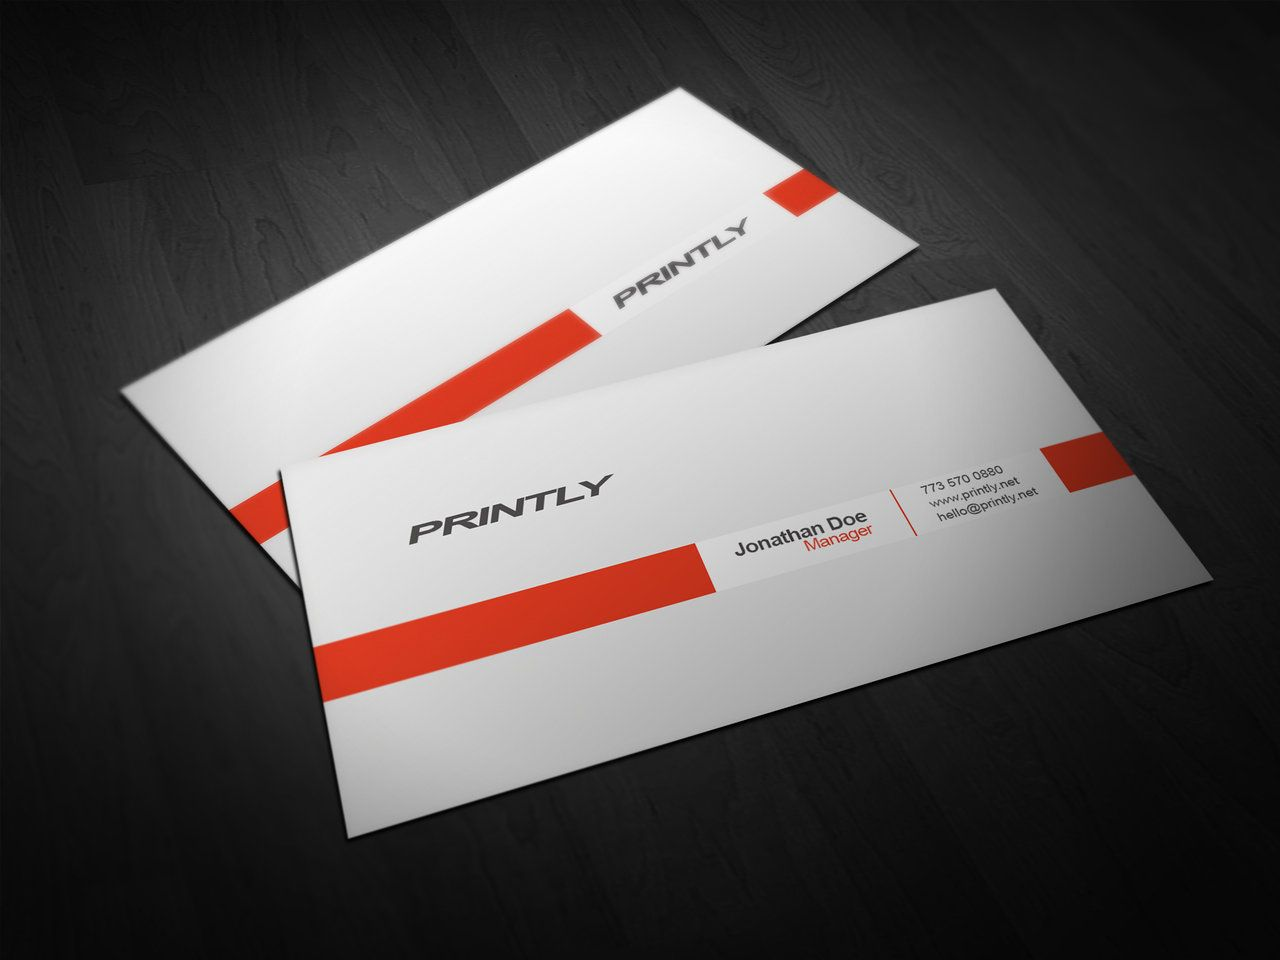 Free template business cards business template pinterest card free template business cards friedricerecipe Images